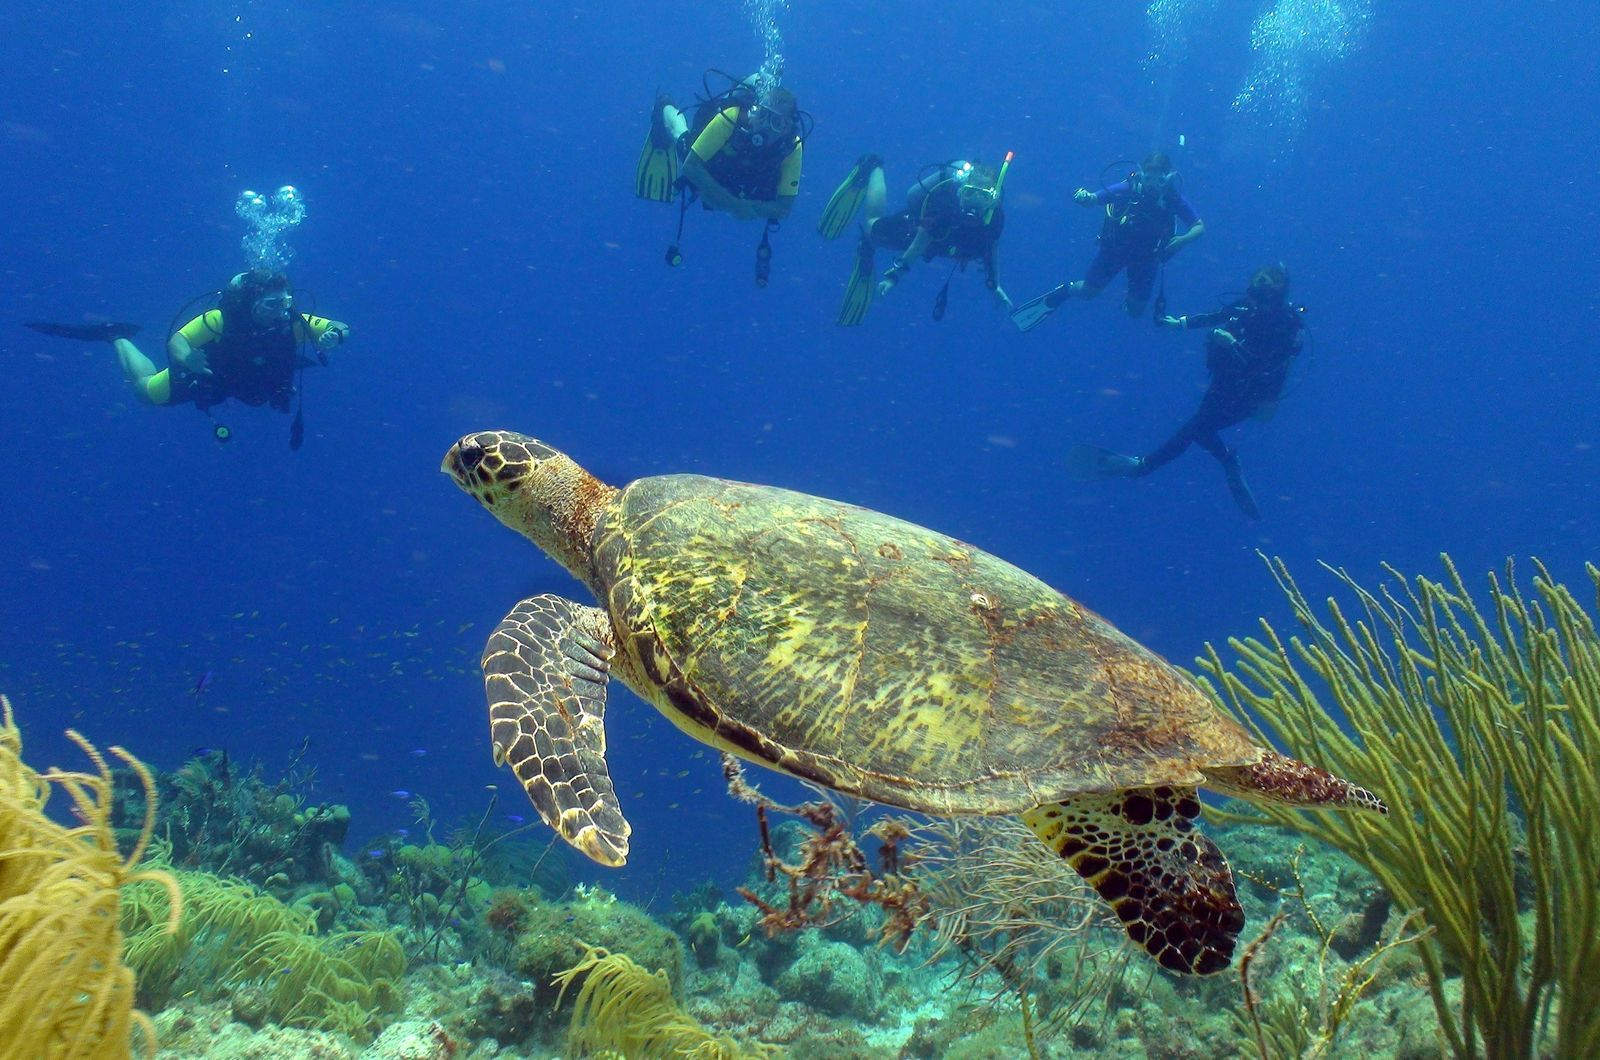 Dive into Winter - Lanais Deluxe - 5 days 2 tank boat & unlimited shore diving